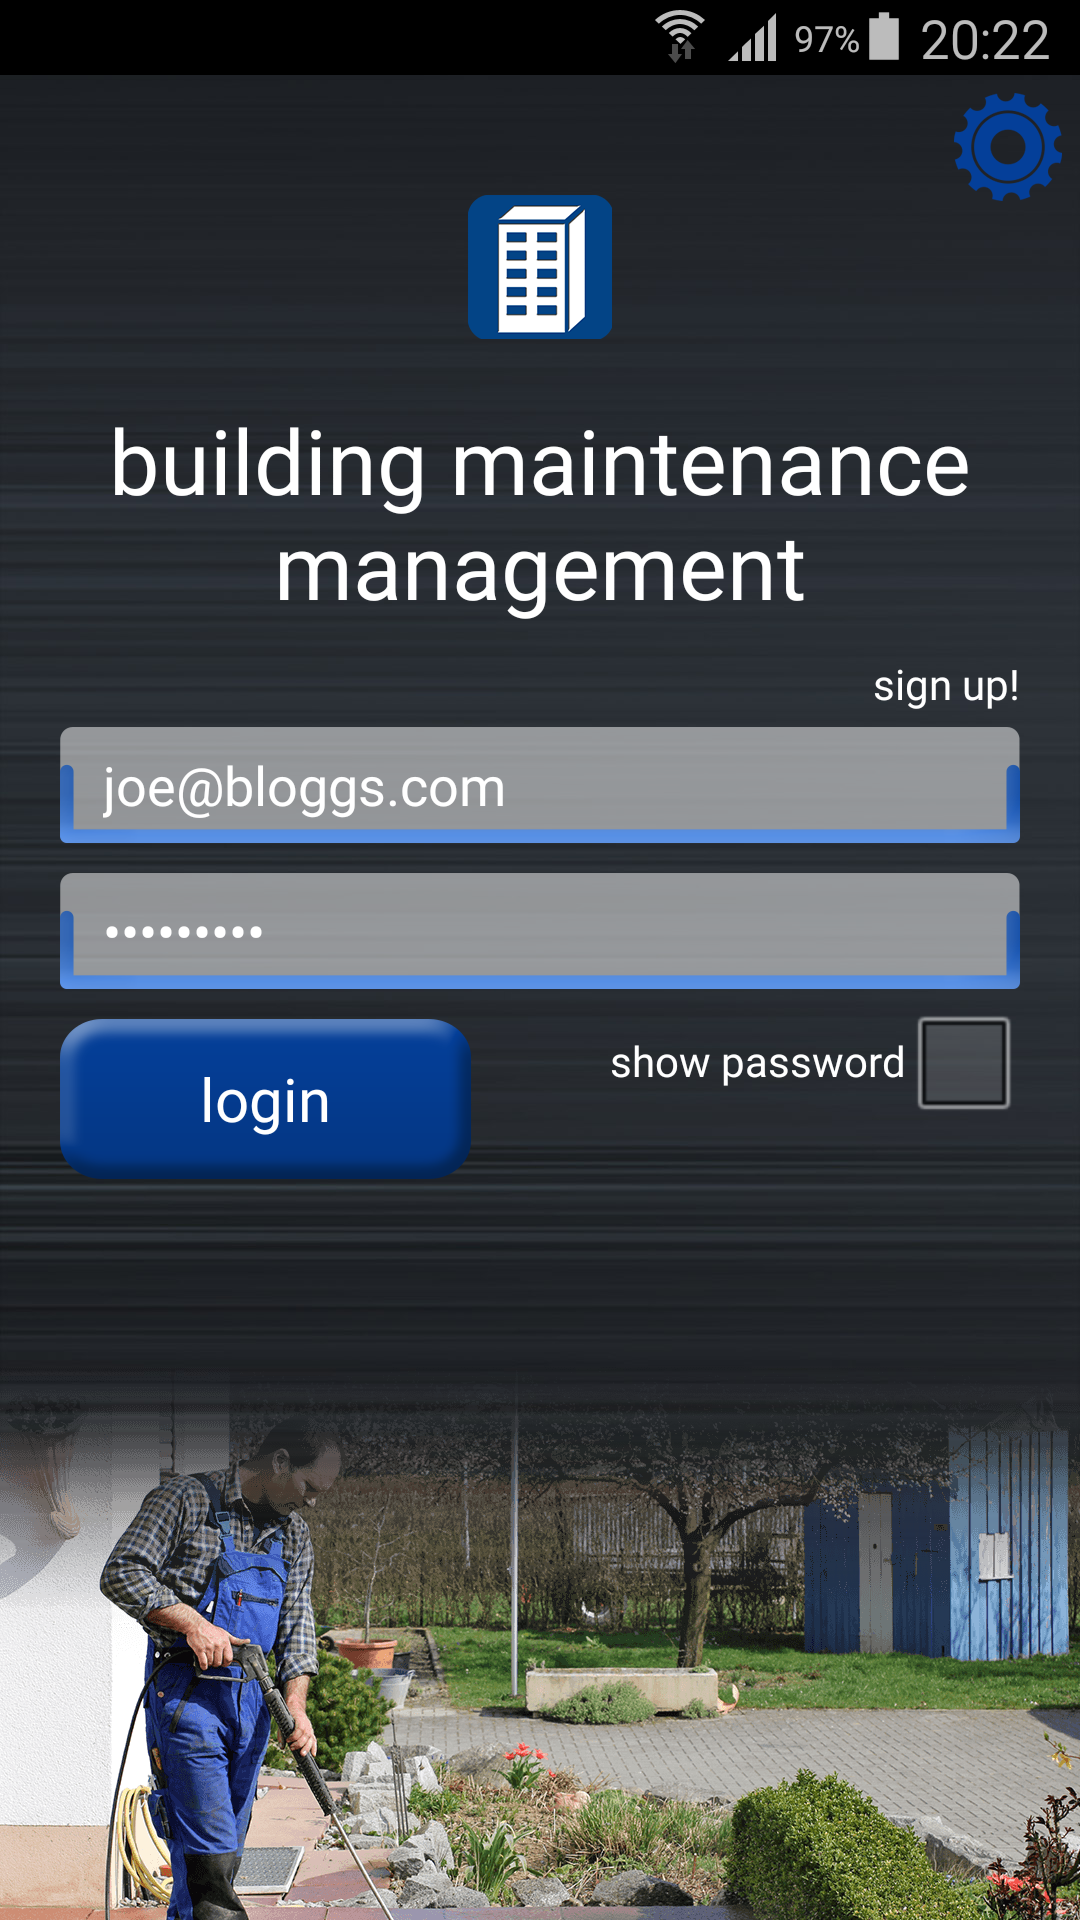 buildingMaintenanceManagement_EN_1